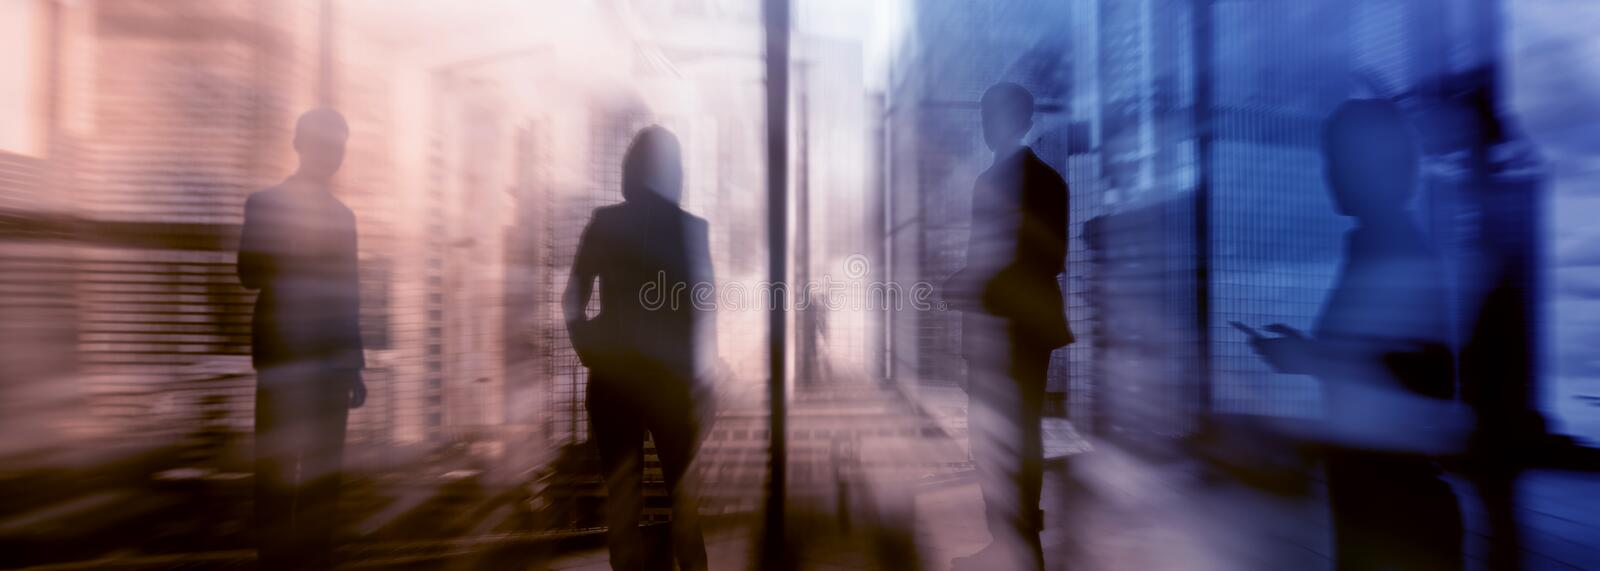 Silhouettes of people walking in the street near skyscrapers and modern office buildings. Multiple exposure blurred image. stock images